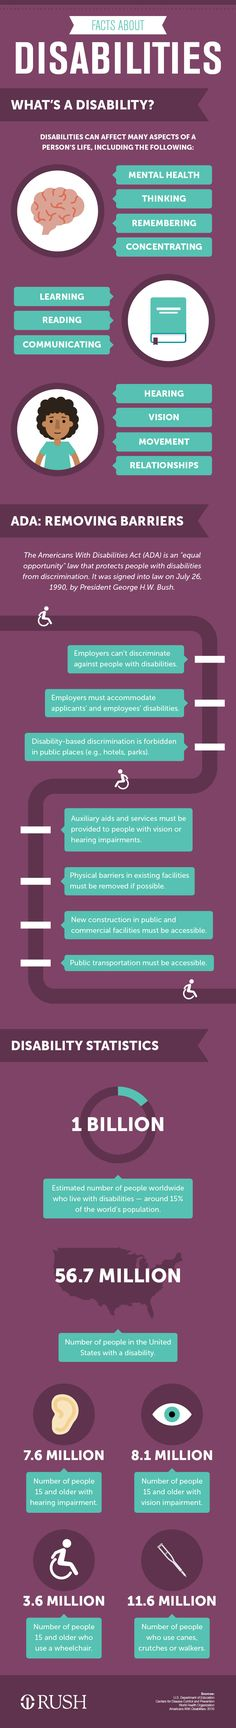 The Americans With Disabilities Act was signed into law 25 years ago. So what, exactly, did it accomplish? #ADA25